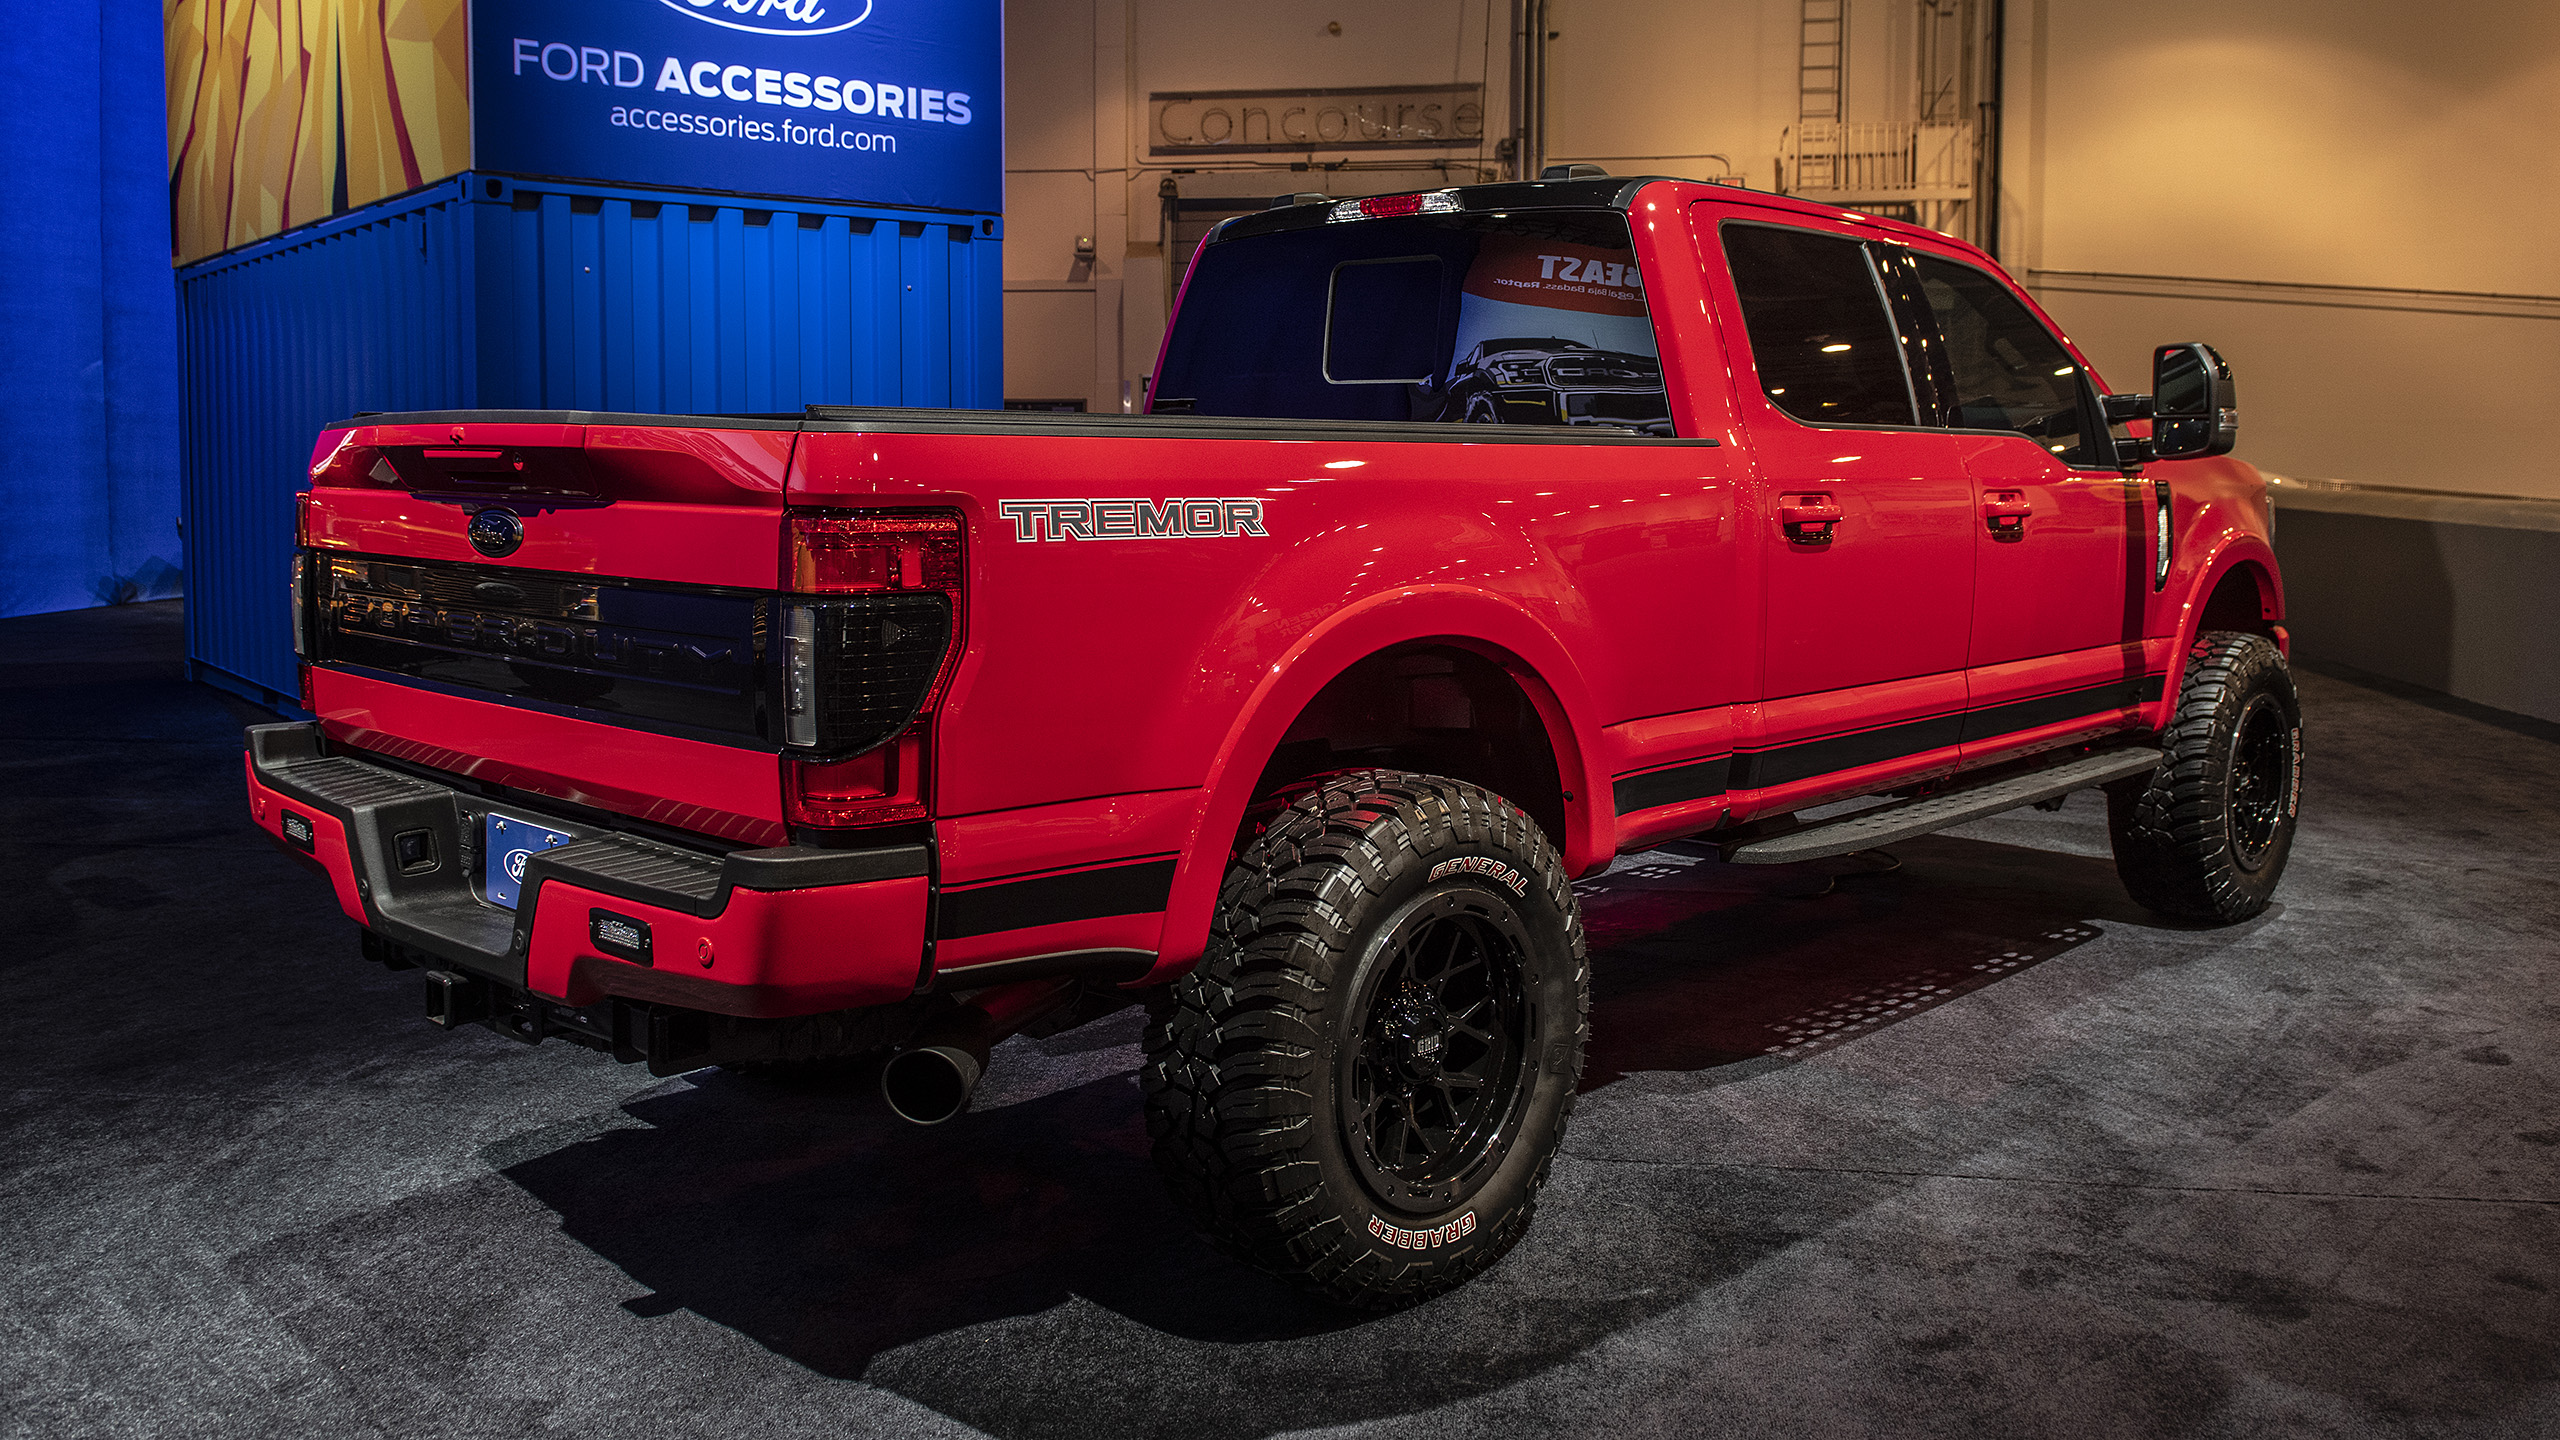 2020 Ford Super Duty Builds To Feature In Ford's 2019 SEMA